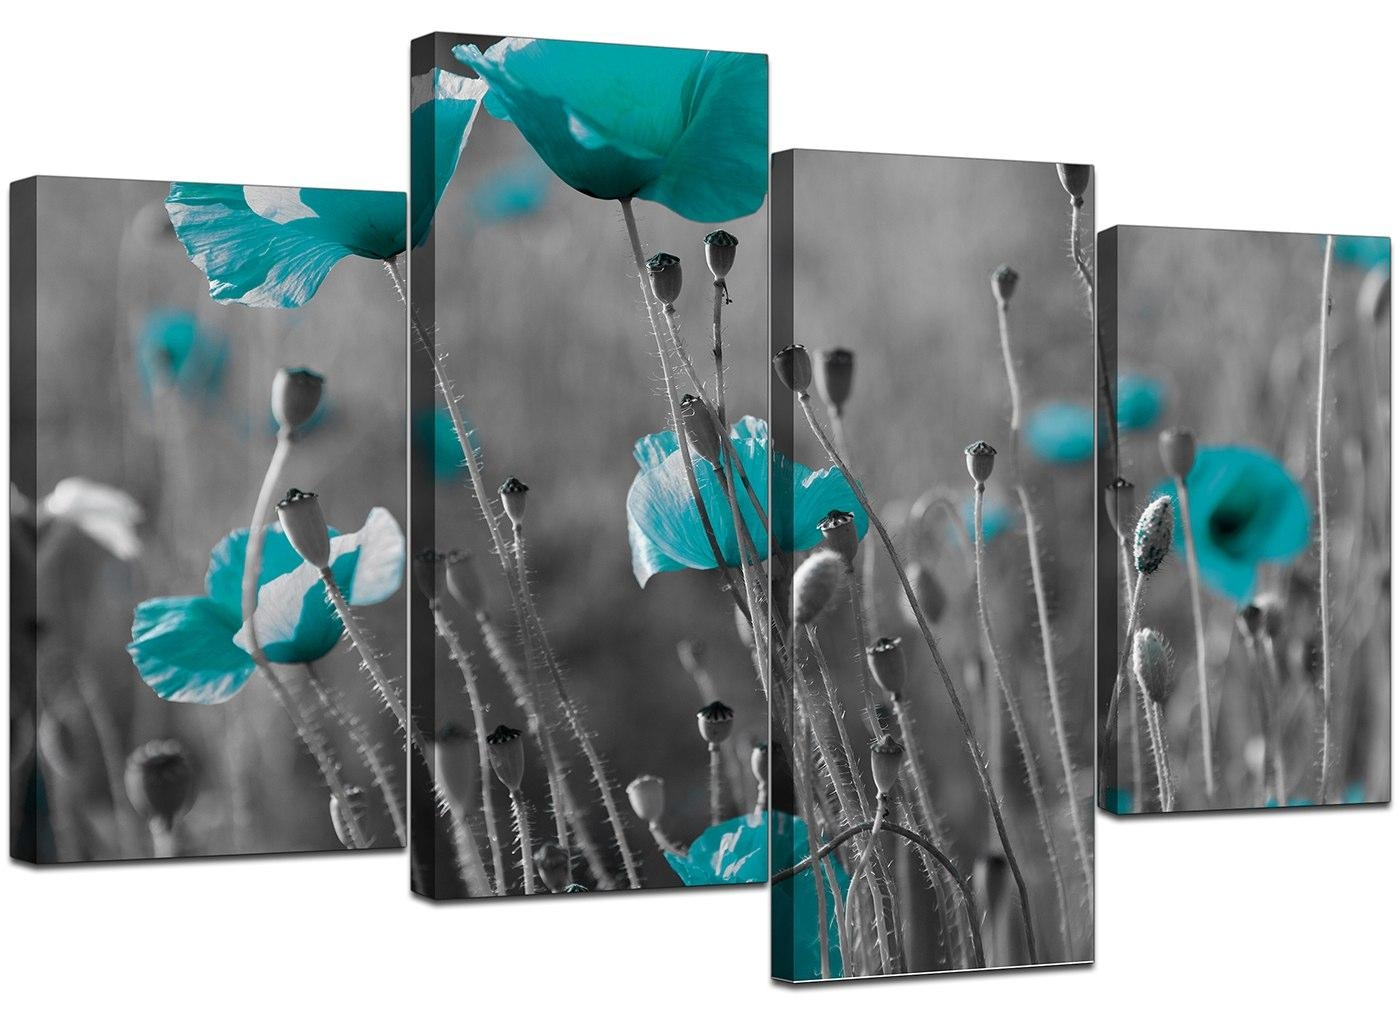 Canvas Art Of Teal Poppies In Black & White For Your Office Intended For Teal And Black Wall Art (View 11 of 20)